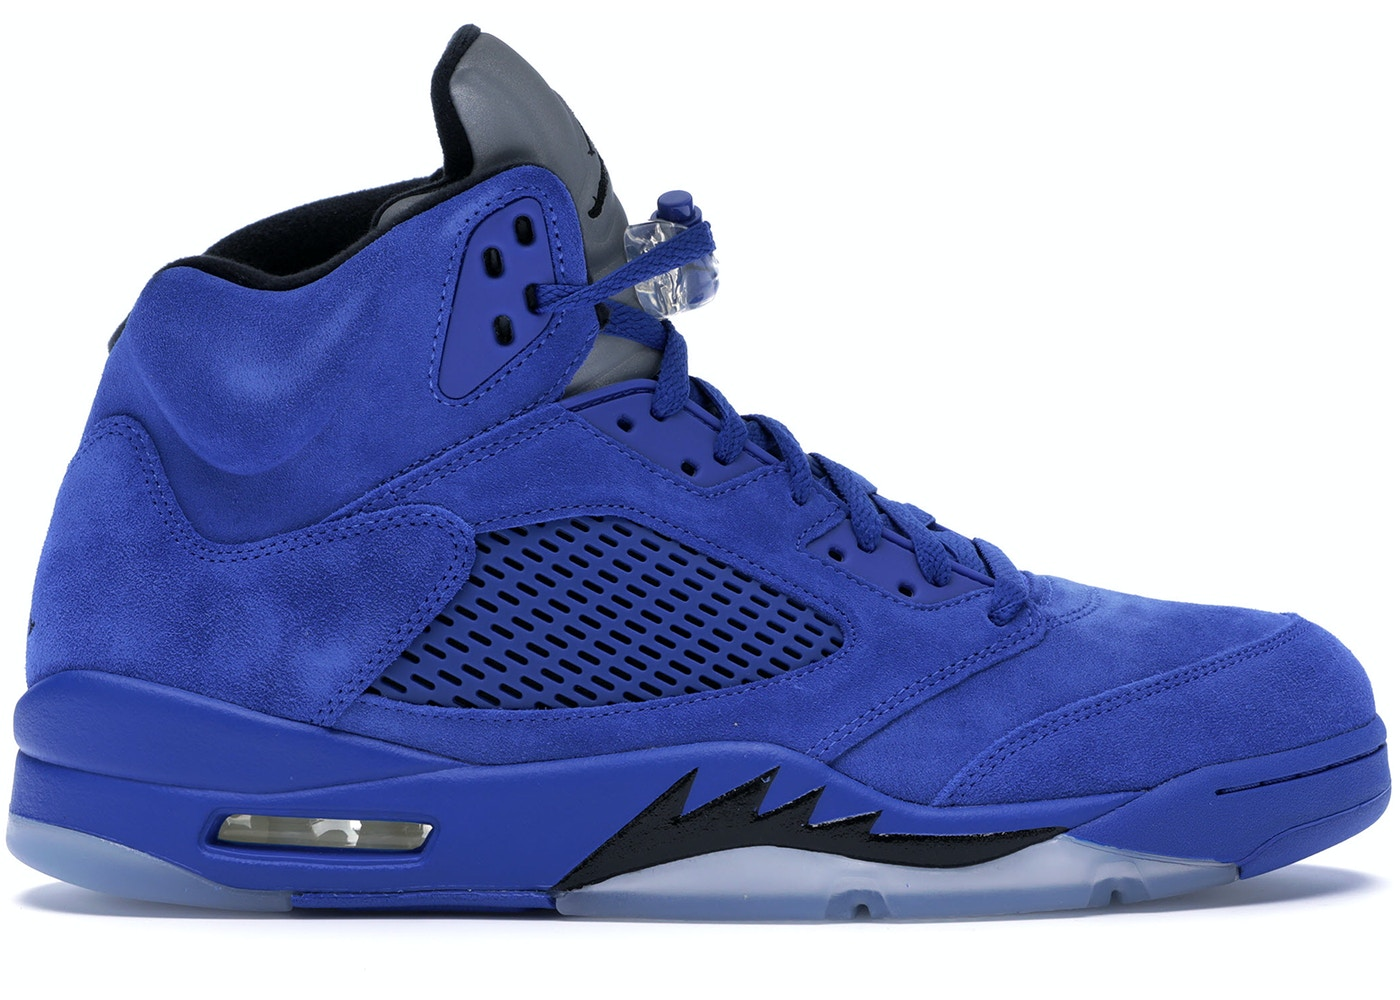 faa638a2f83 Buy Air Jordan 5 Shoes & Deadstock Sneakers